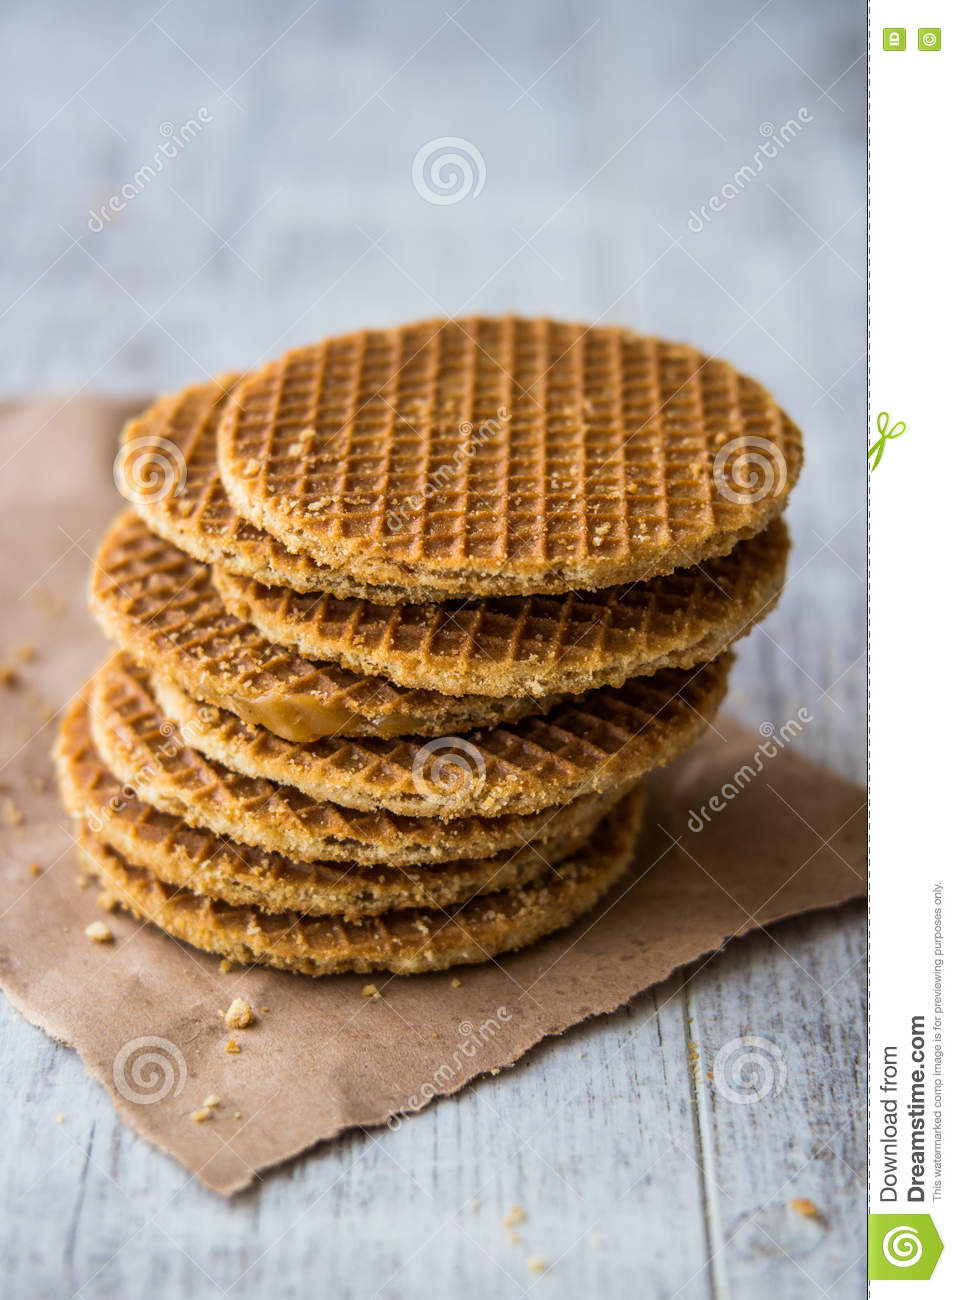 Stroopwafel Is A Waffle Made From Two Thin Layers Of Baked Dough With A Caramel Like Syrup Filling In The Middle